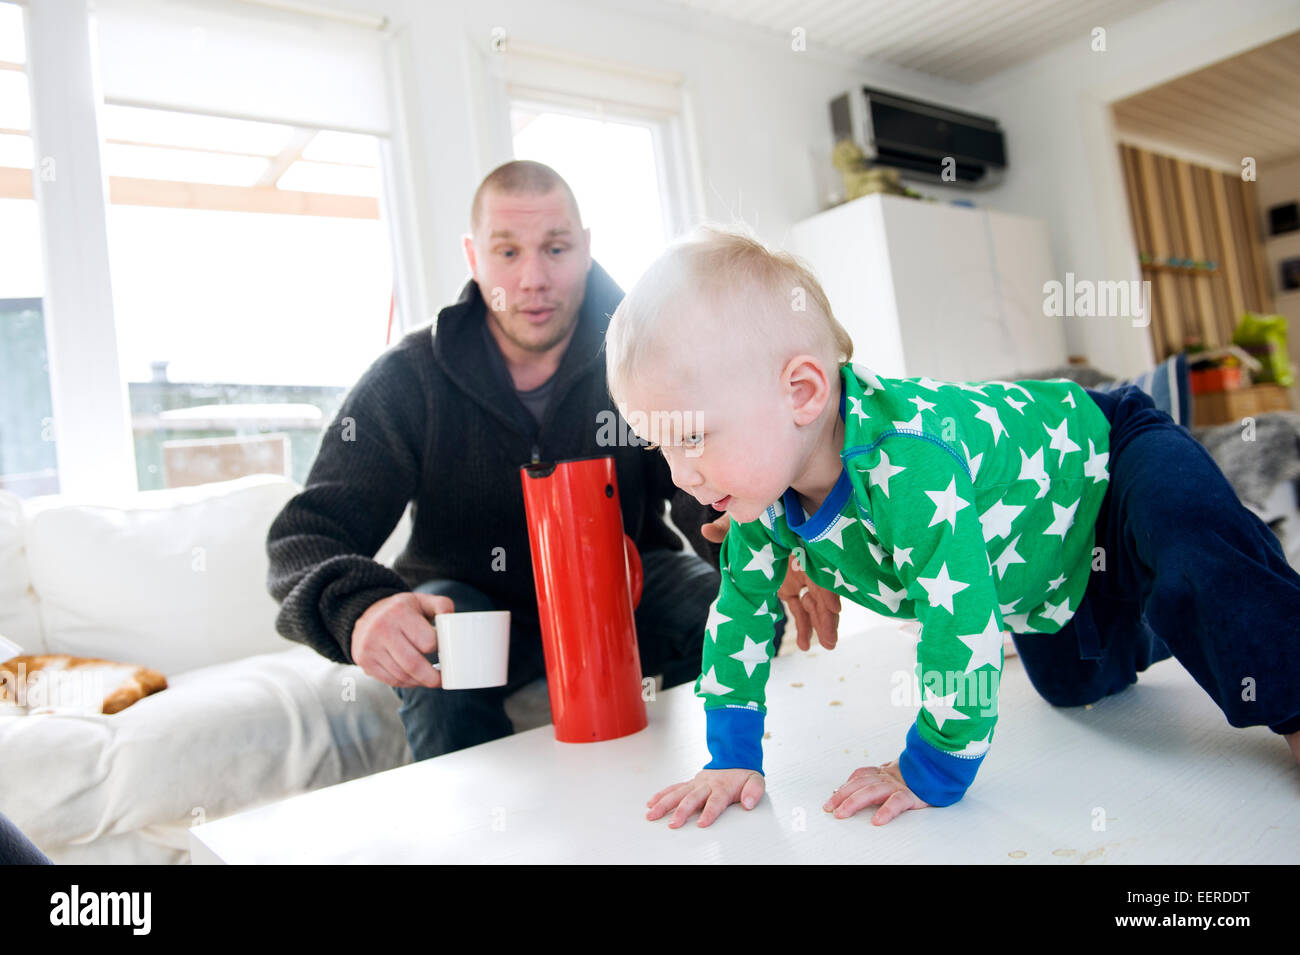 swedish father staying home with 1,5 year old son, paternity leave - Stock Image